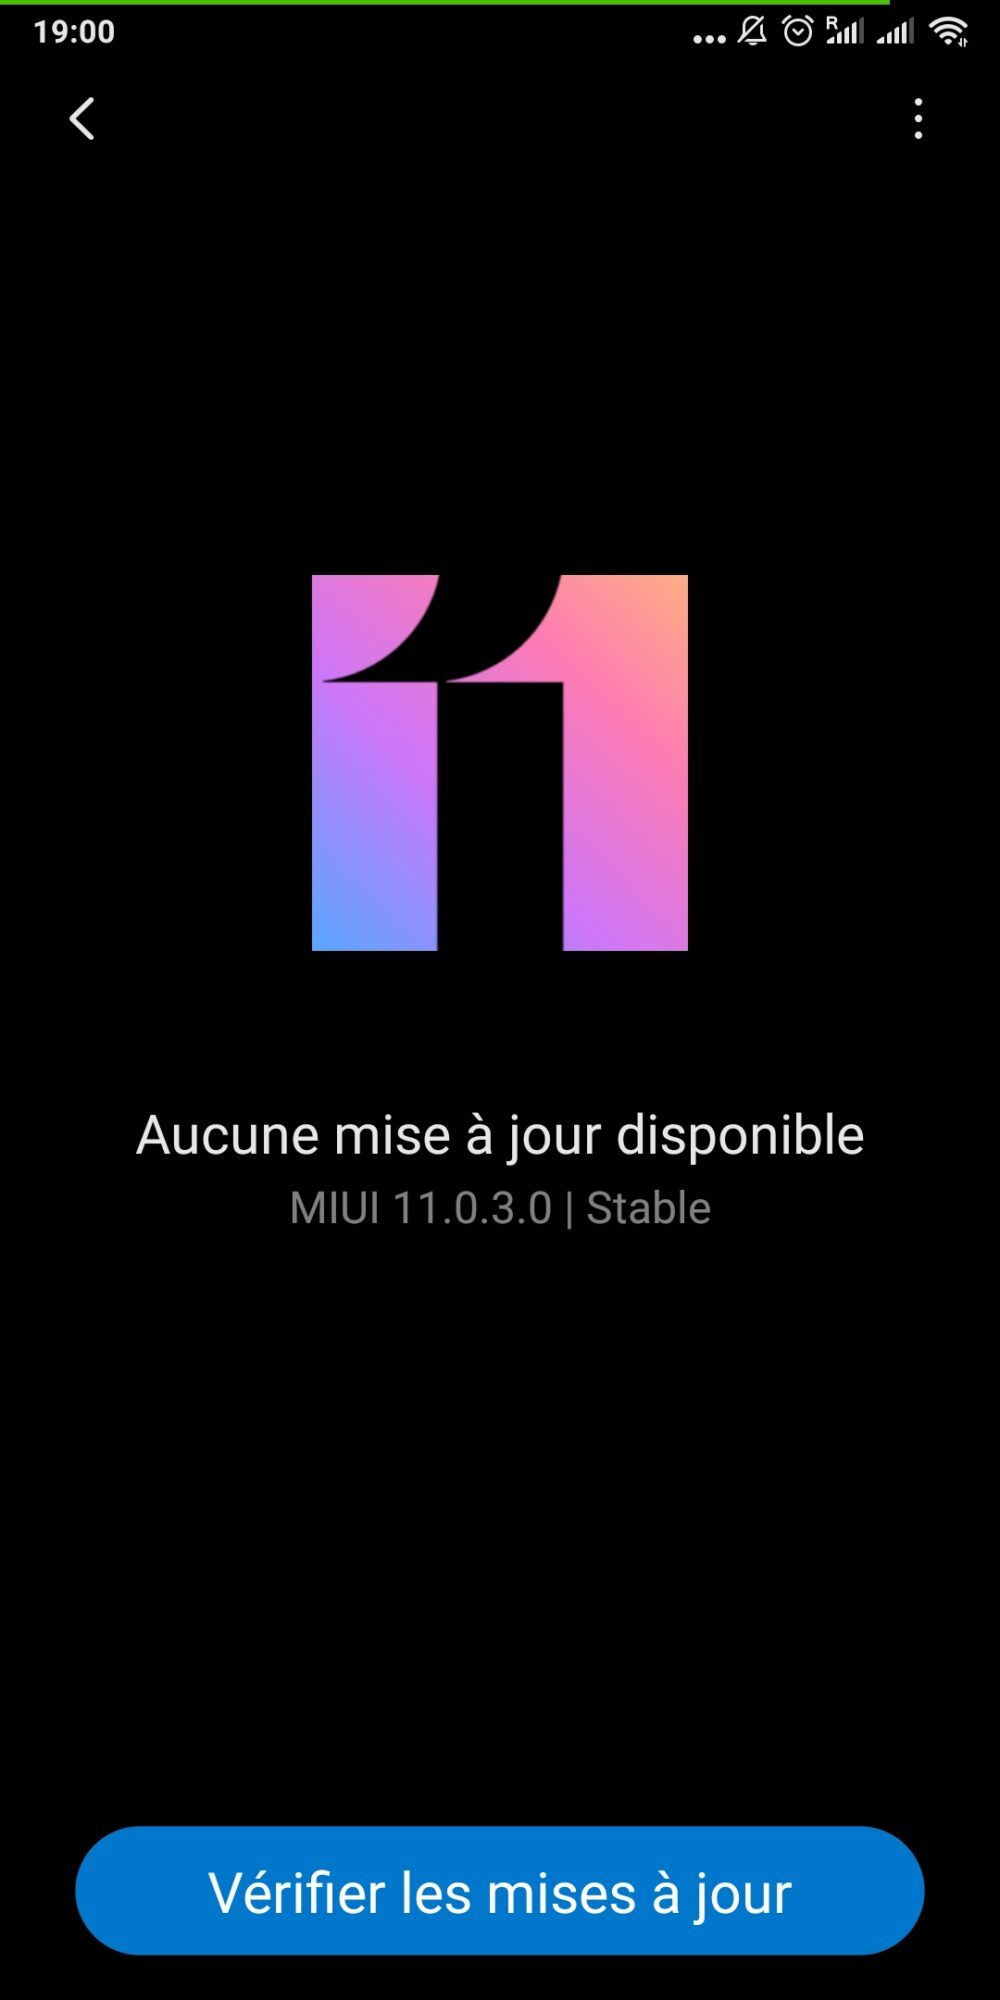 mettre-a-jour-smartphone-android-xiaomi